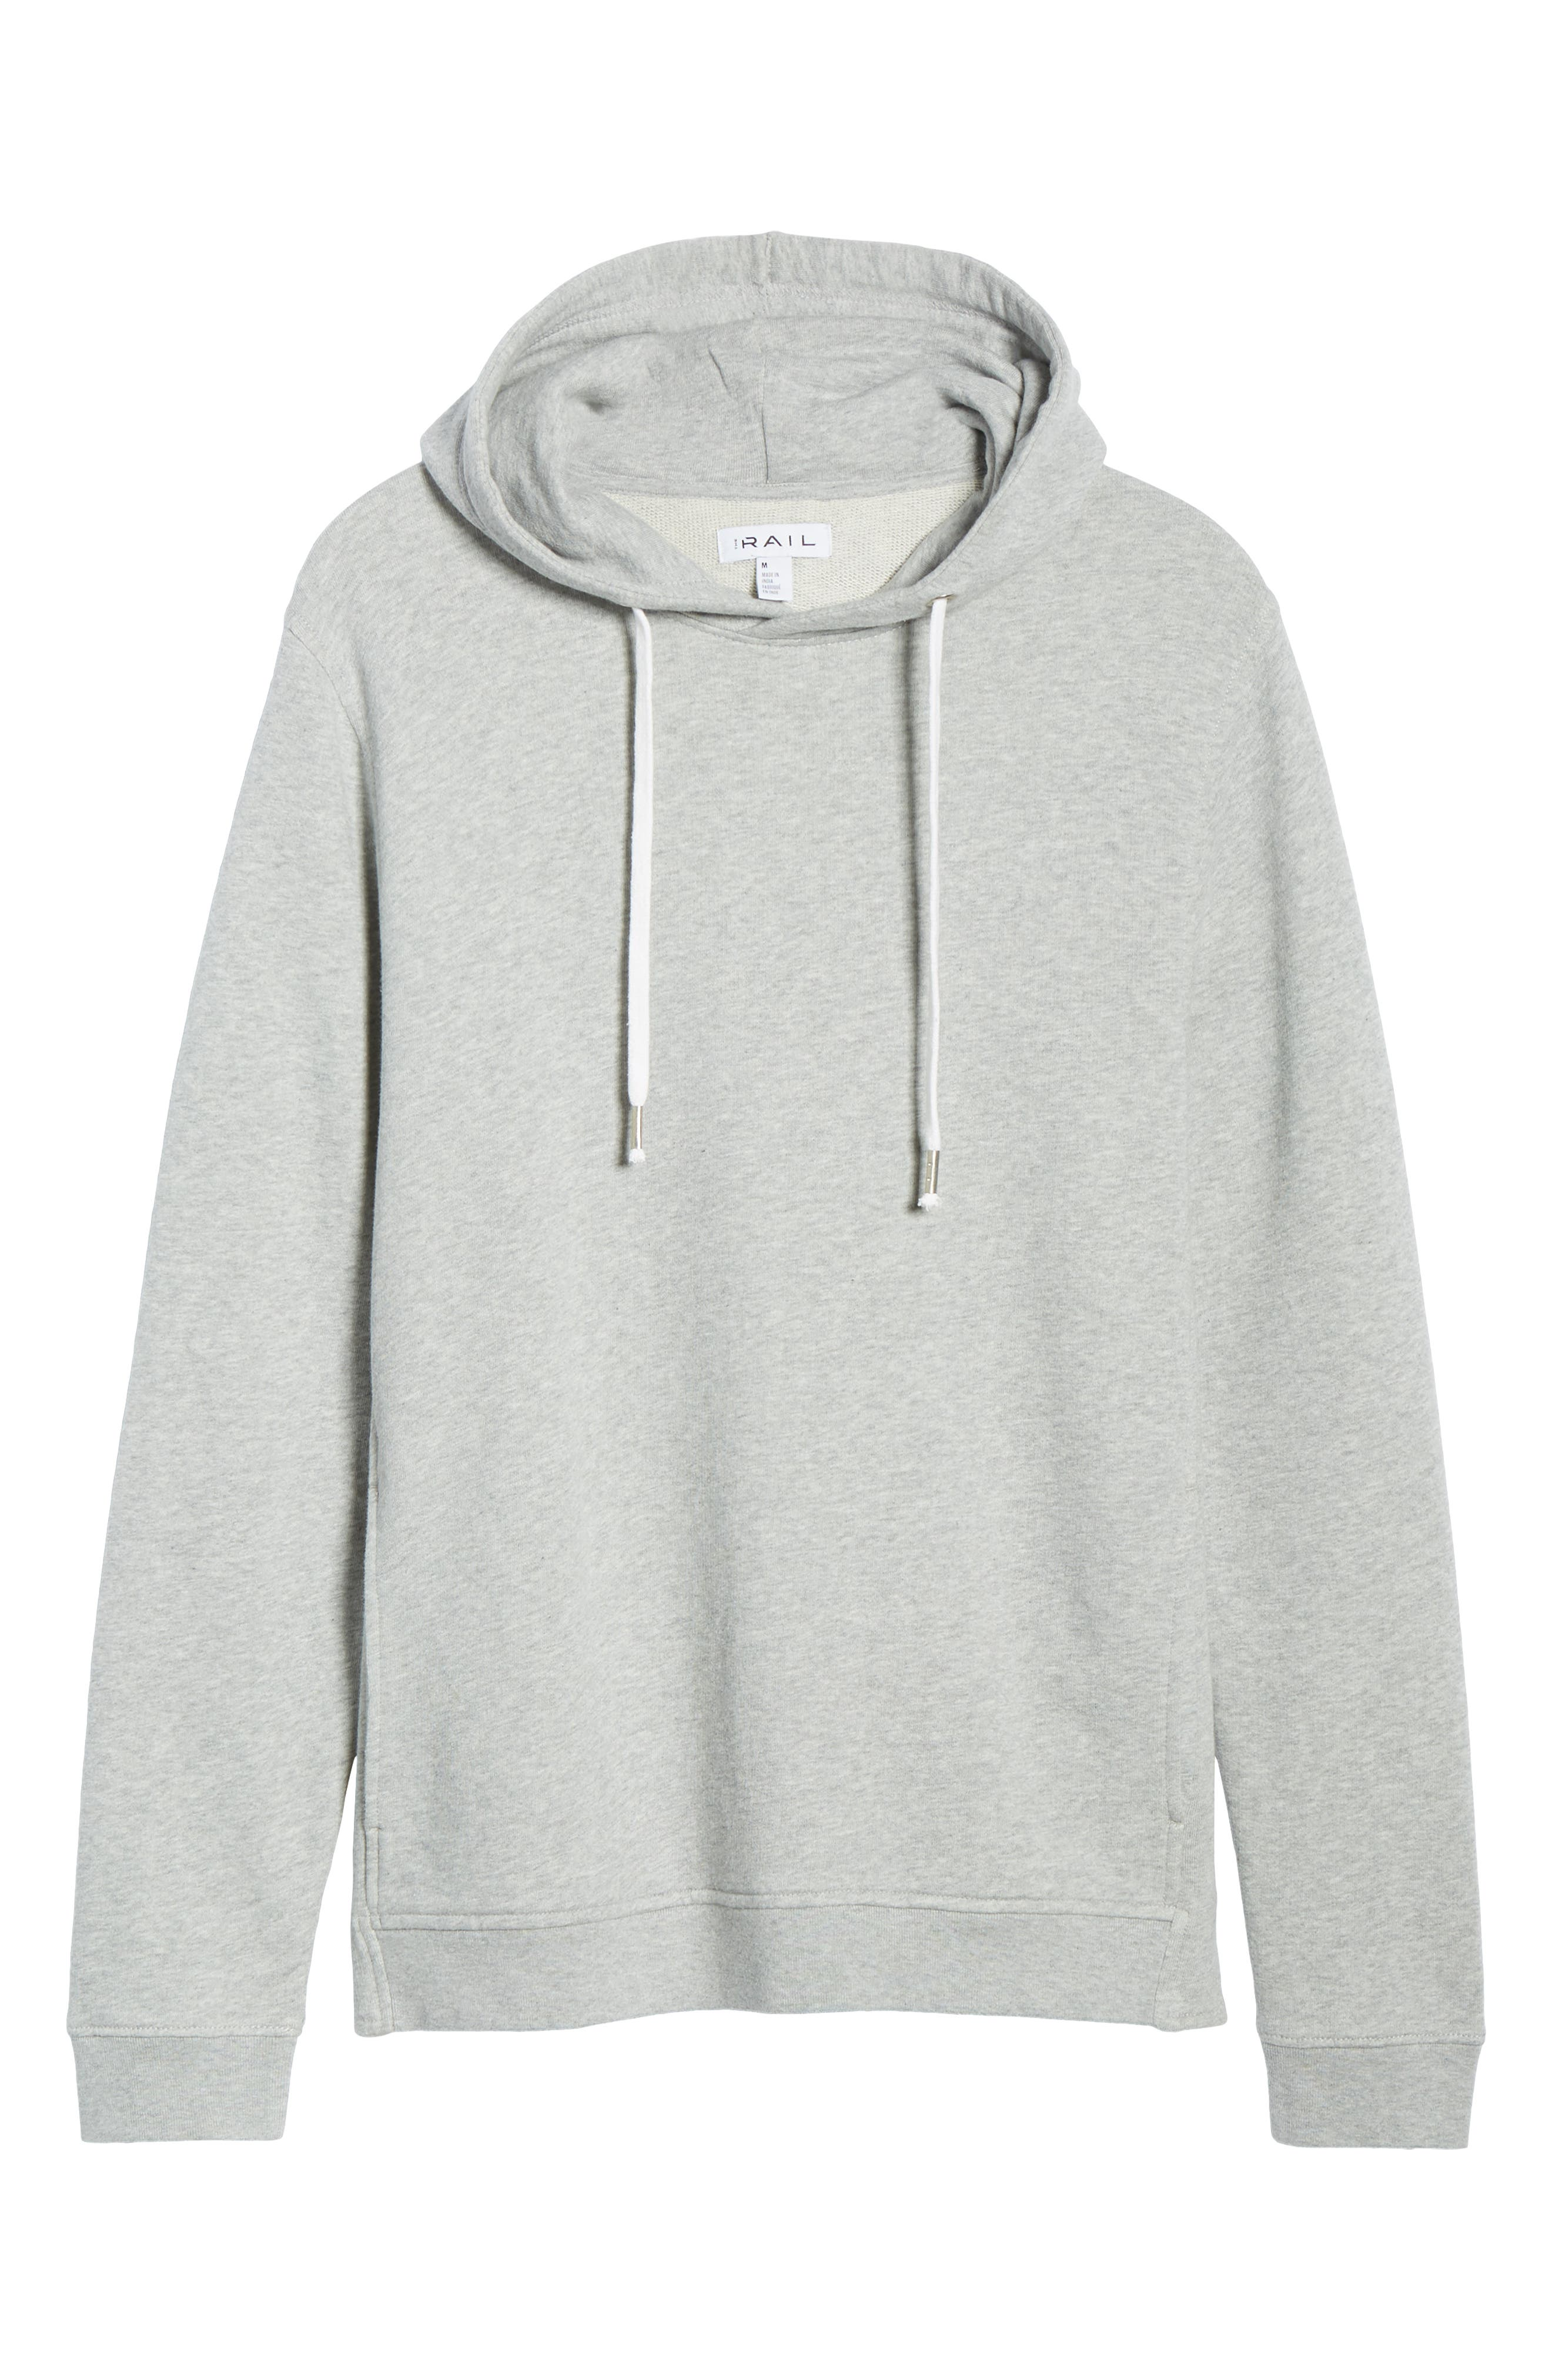 THE RAIL, Heather Sunfaded Hoodie, Alternate thumbnail 6, color, GREY ASH HEATHER